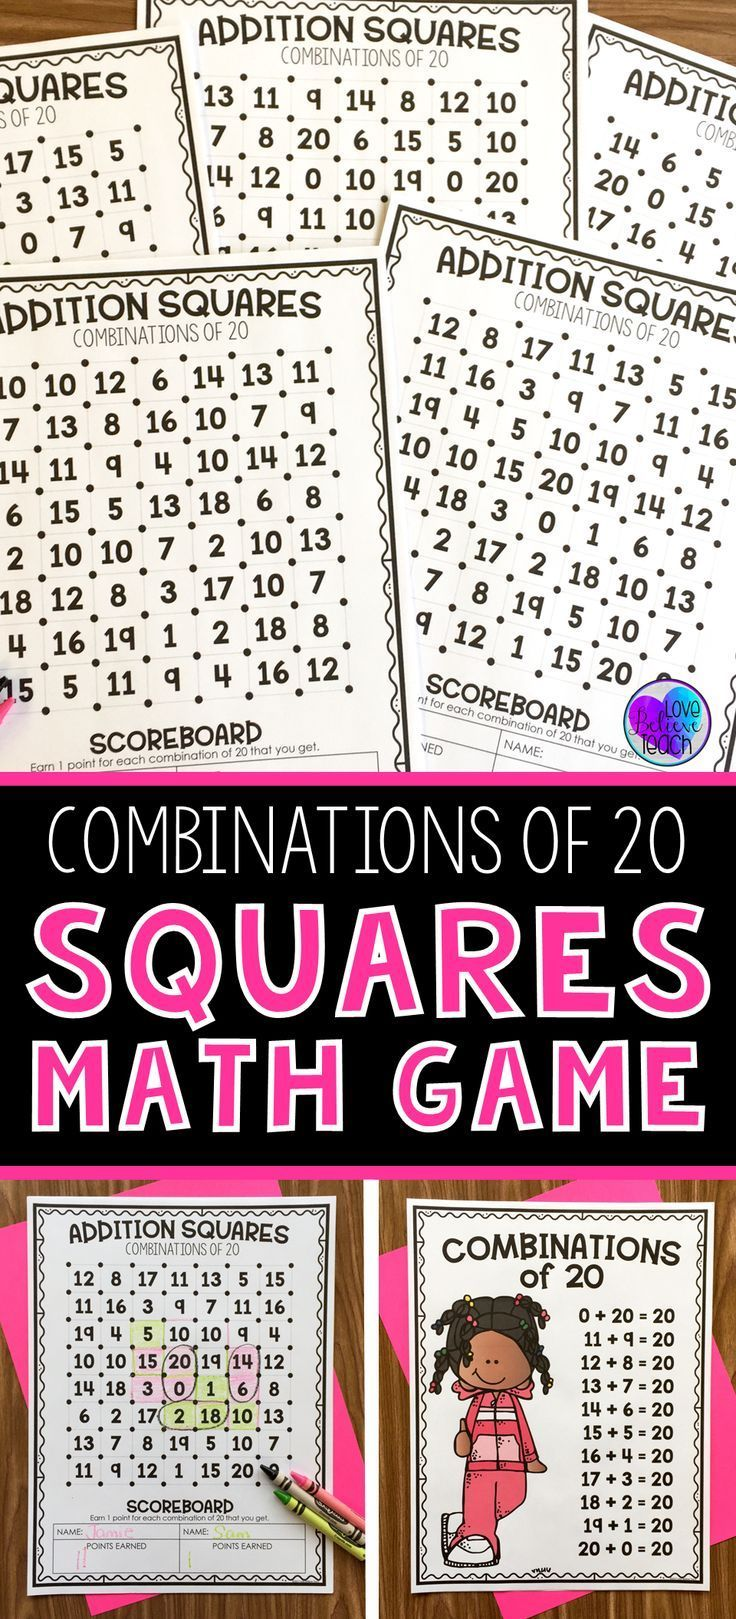 Combination of 20 - Addition Squares Math Game | Math rotations ...